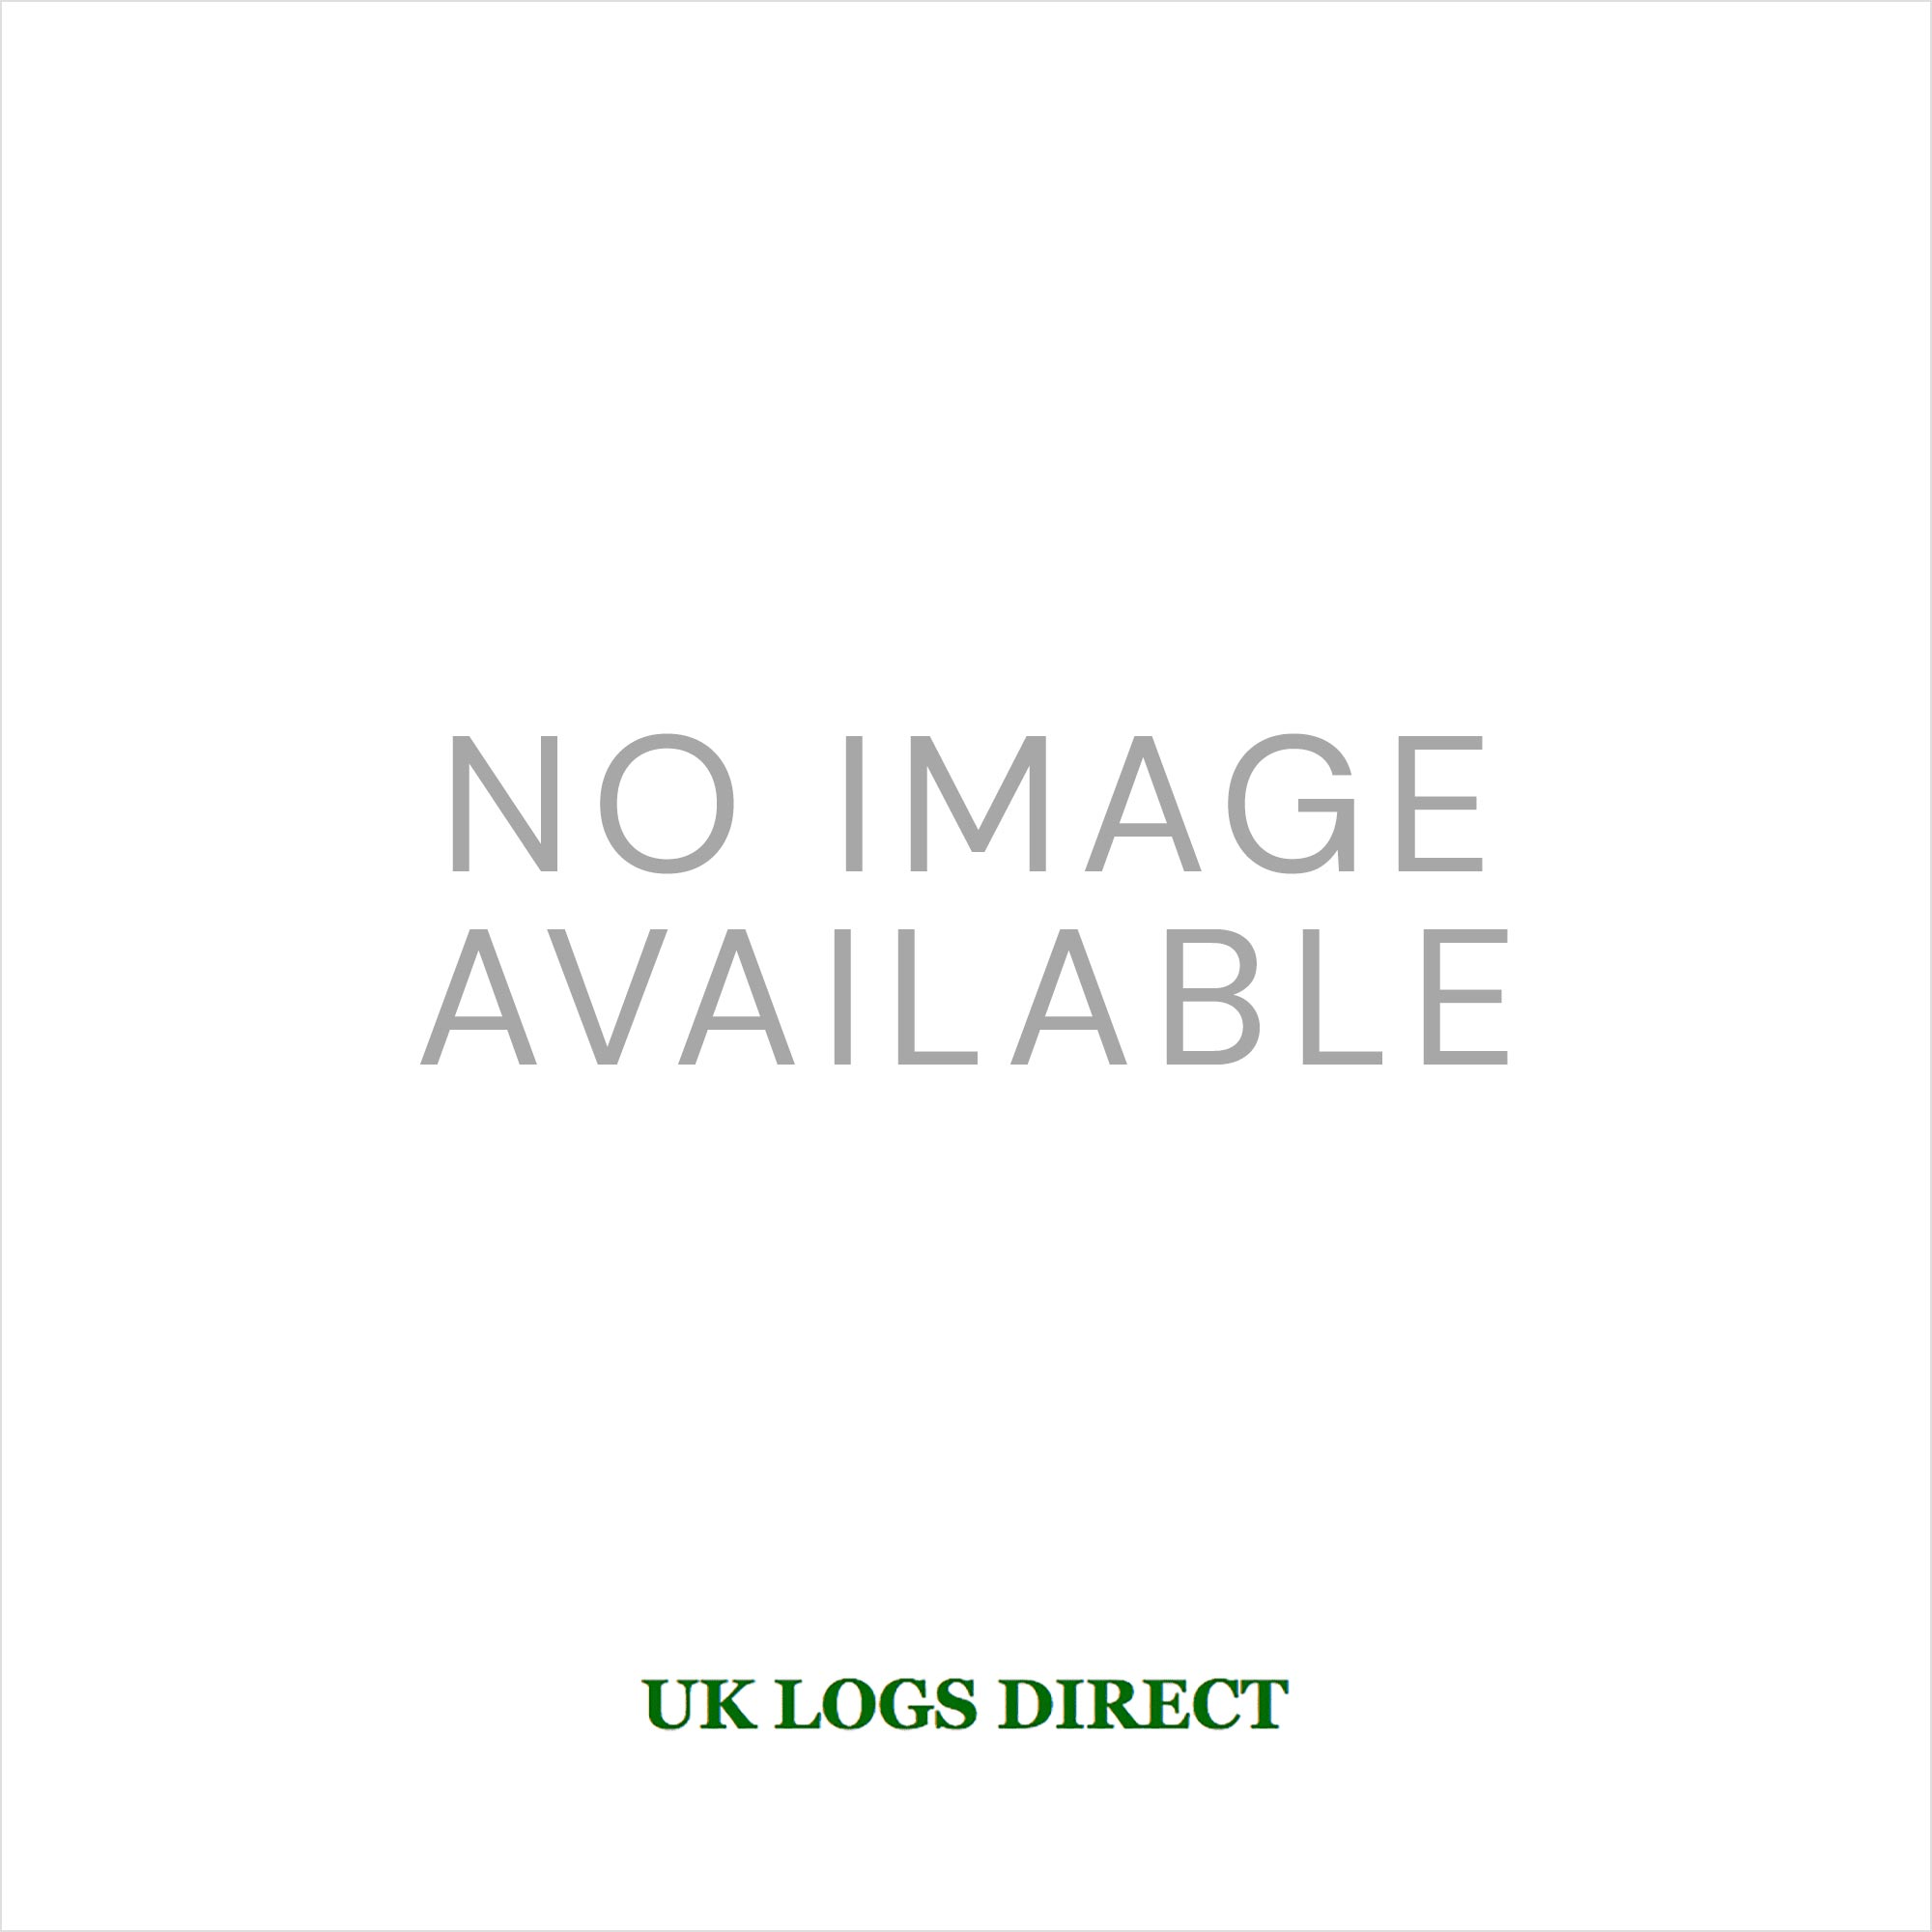 Kiln Dried ASH & BIRCH Logs In Two Vented Barrow Bags Perfect For Restricted Access